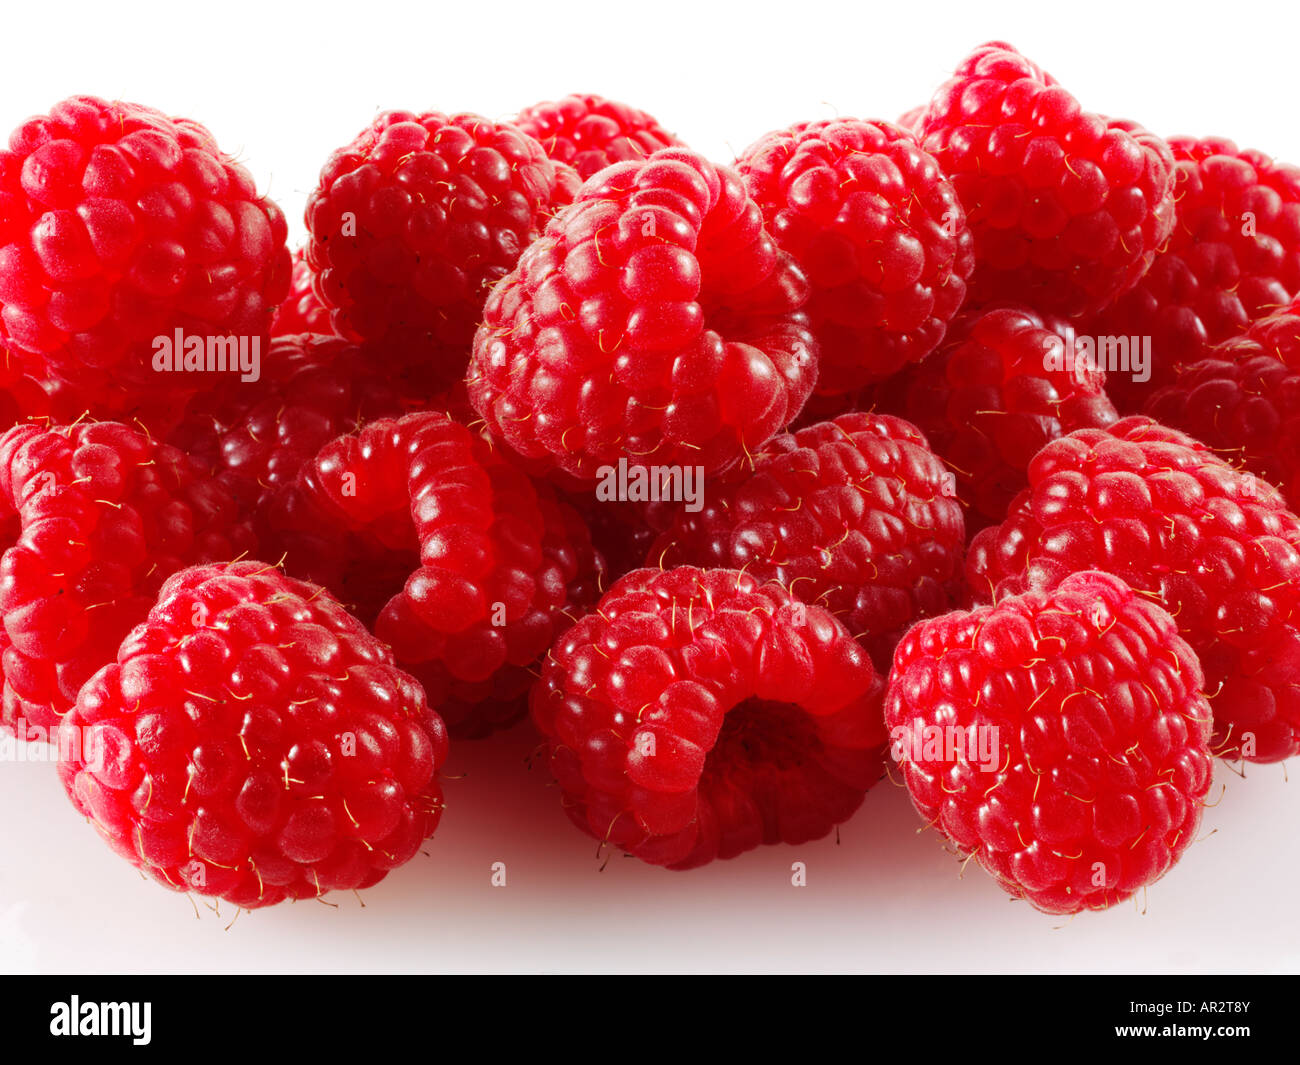 pile of Raspberries on a white background - Stock Image